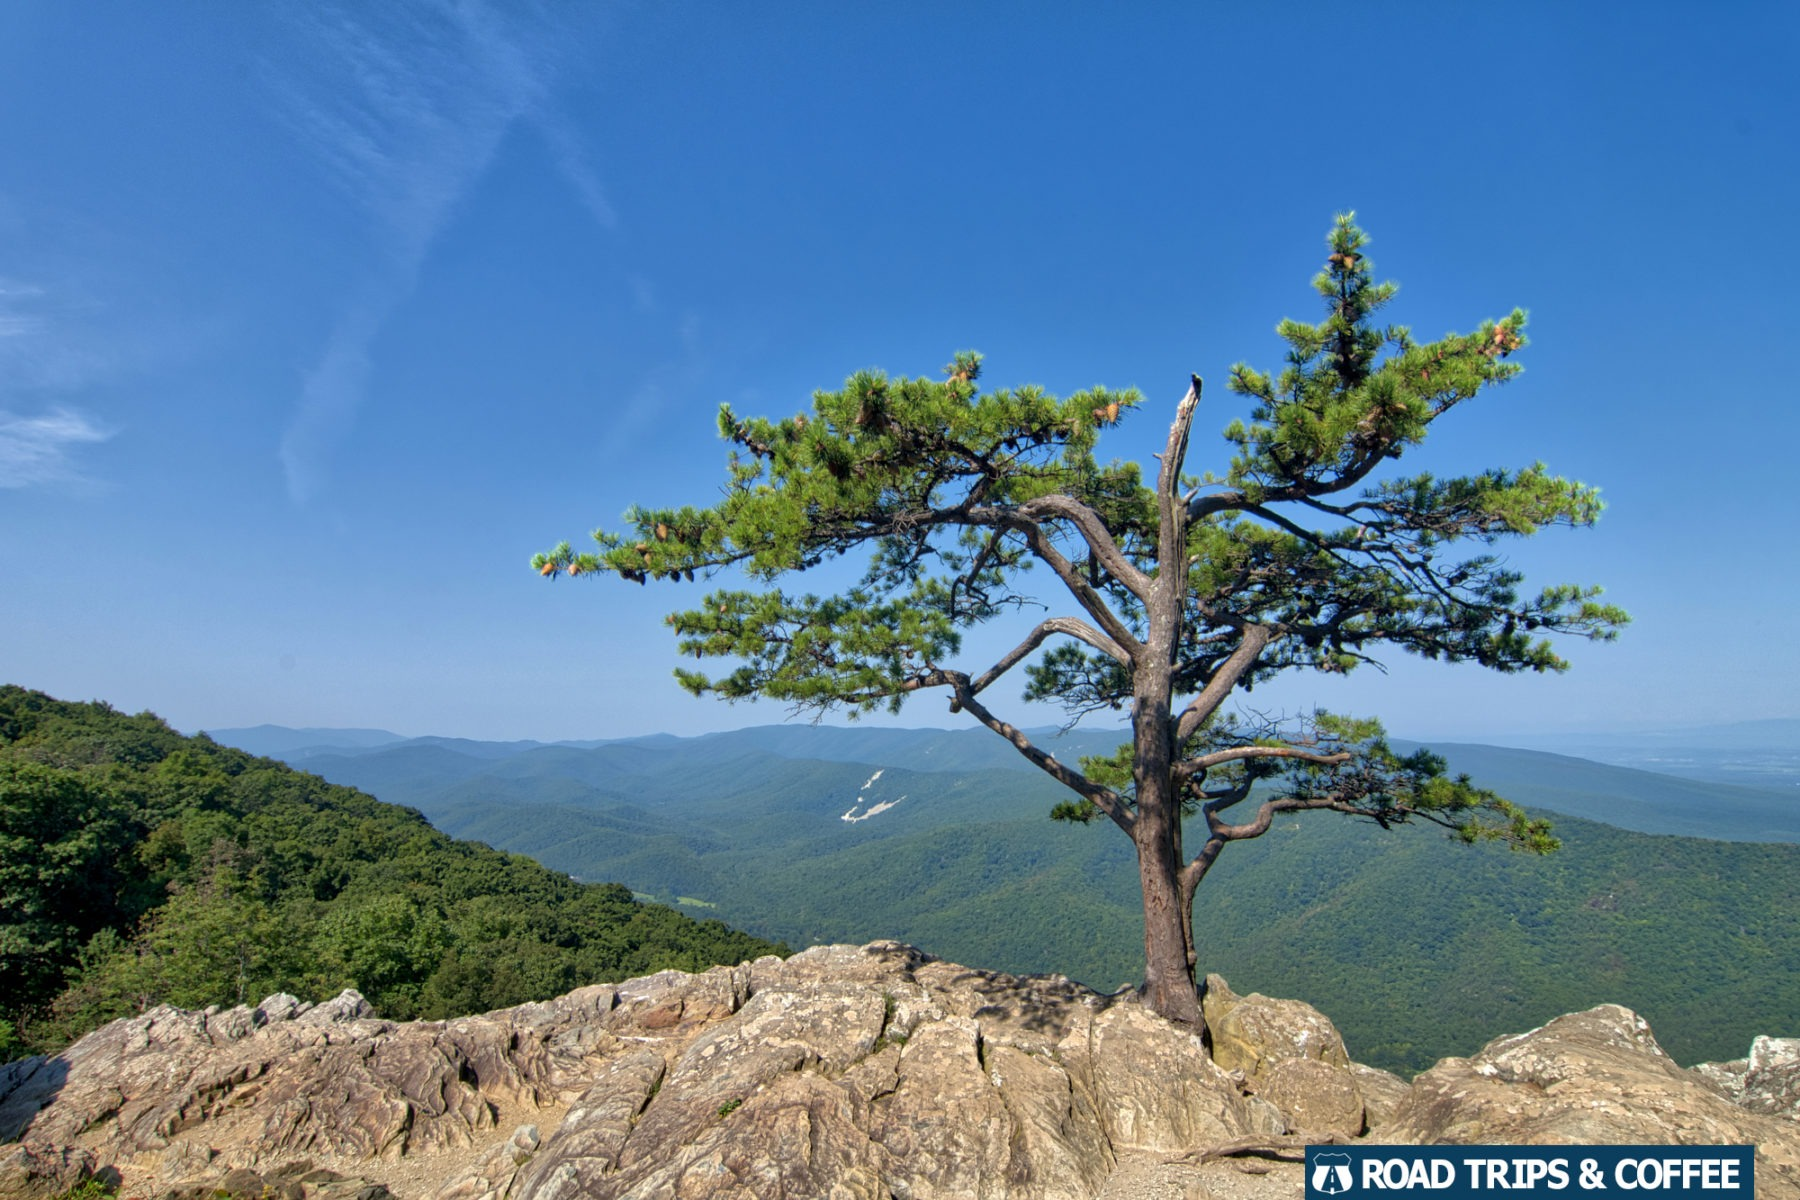 A single tree at the edge of a rocky cliff at Ravens Roost Overlook on the Blue Ridge Parkway in Virginia